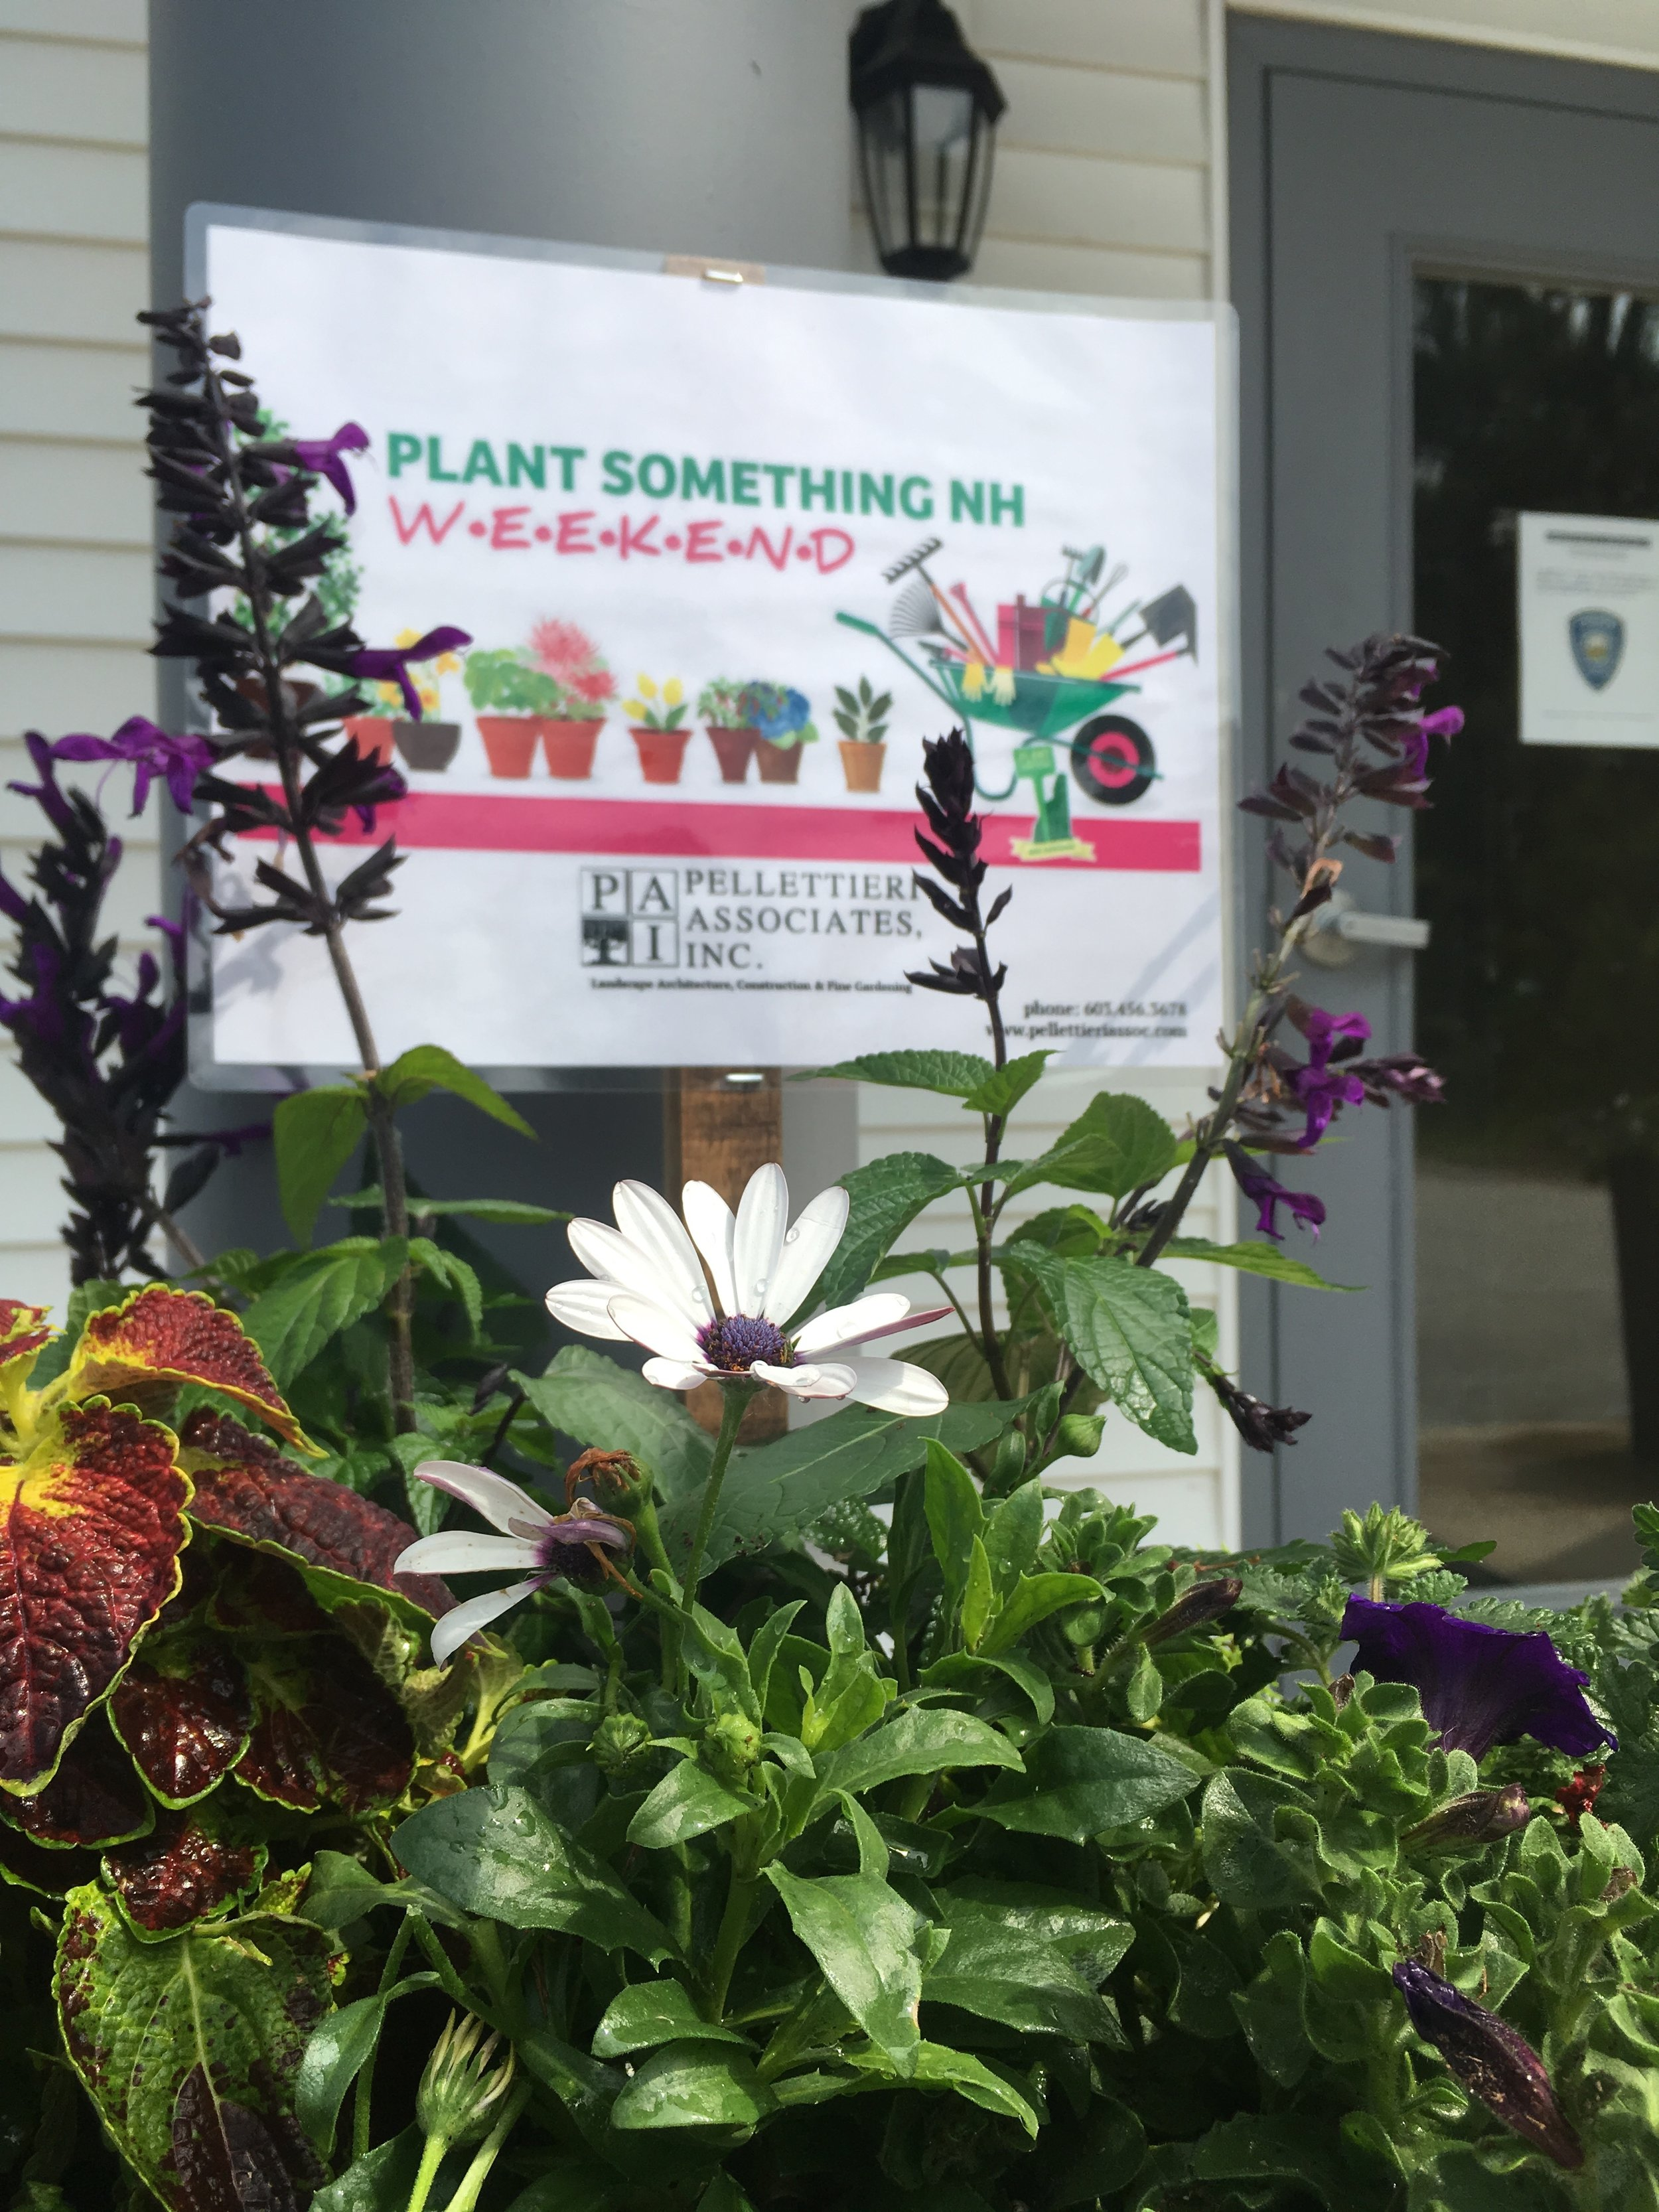 This year… - June 1st and June 2nd, our team will be creating planters for the Warner Police Department and Warner Police Department.Follow us on Facebook and Instagram to see how we're participating in this years #PlantSomethingNHWeekend!